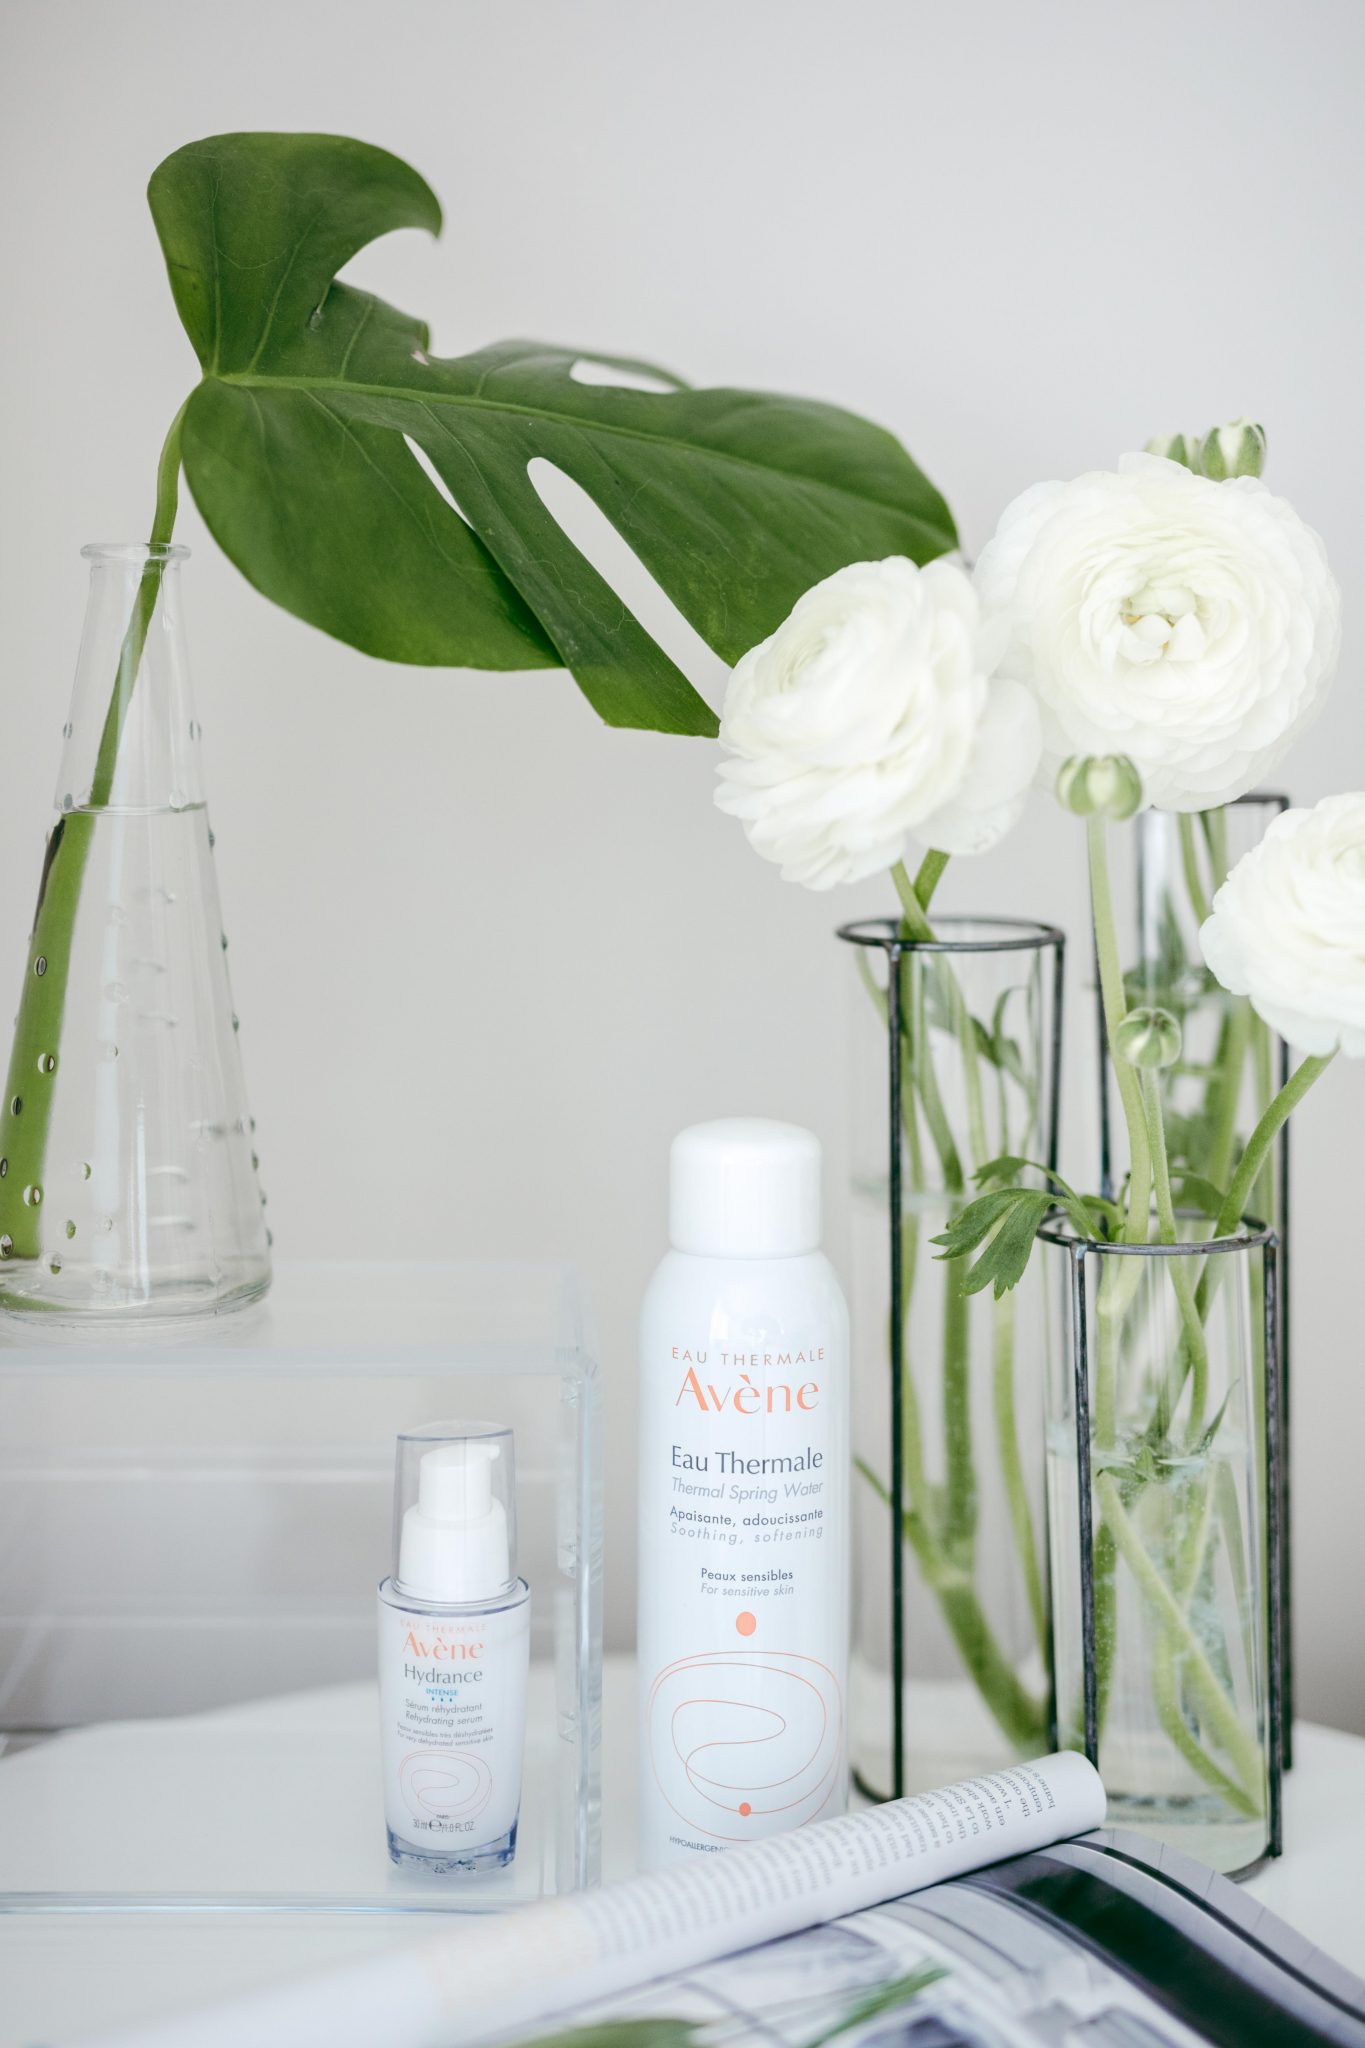 avene eau thermale & hydrance (2 of 3)